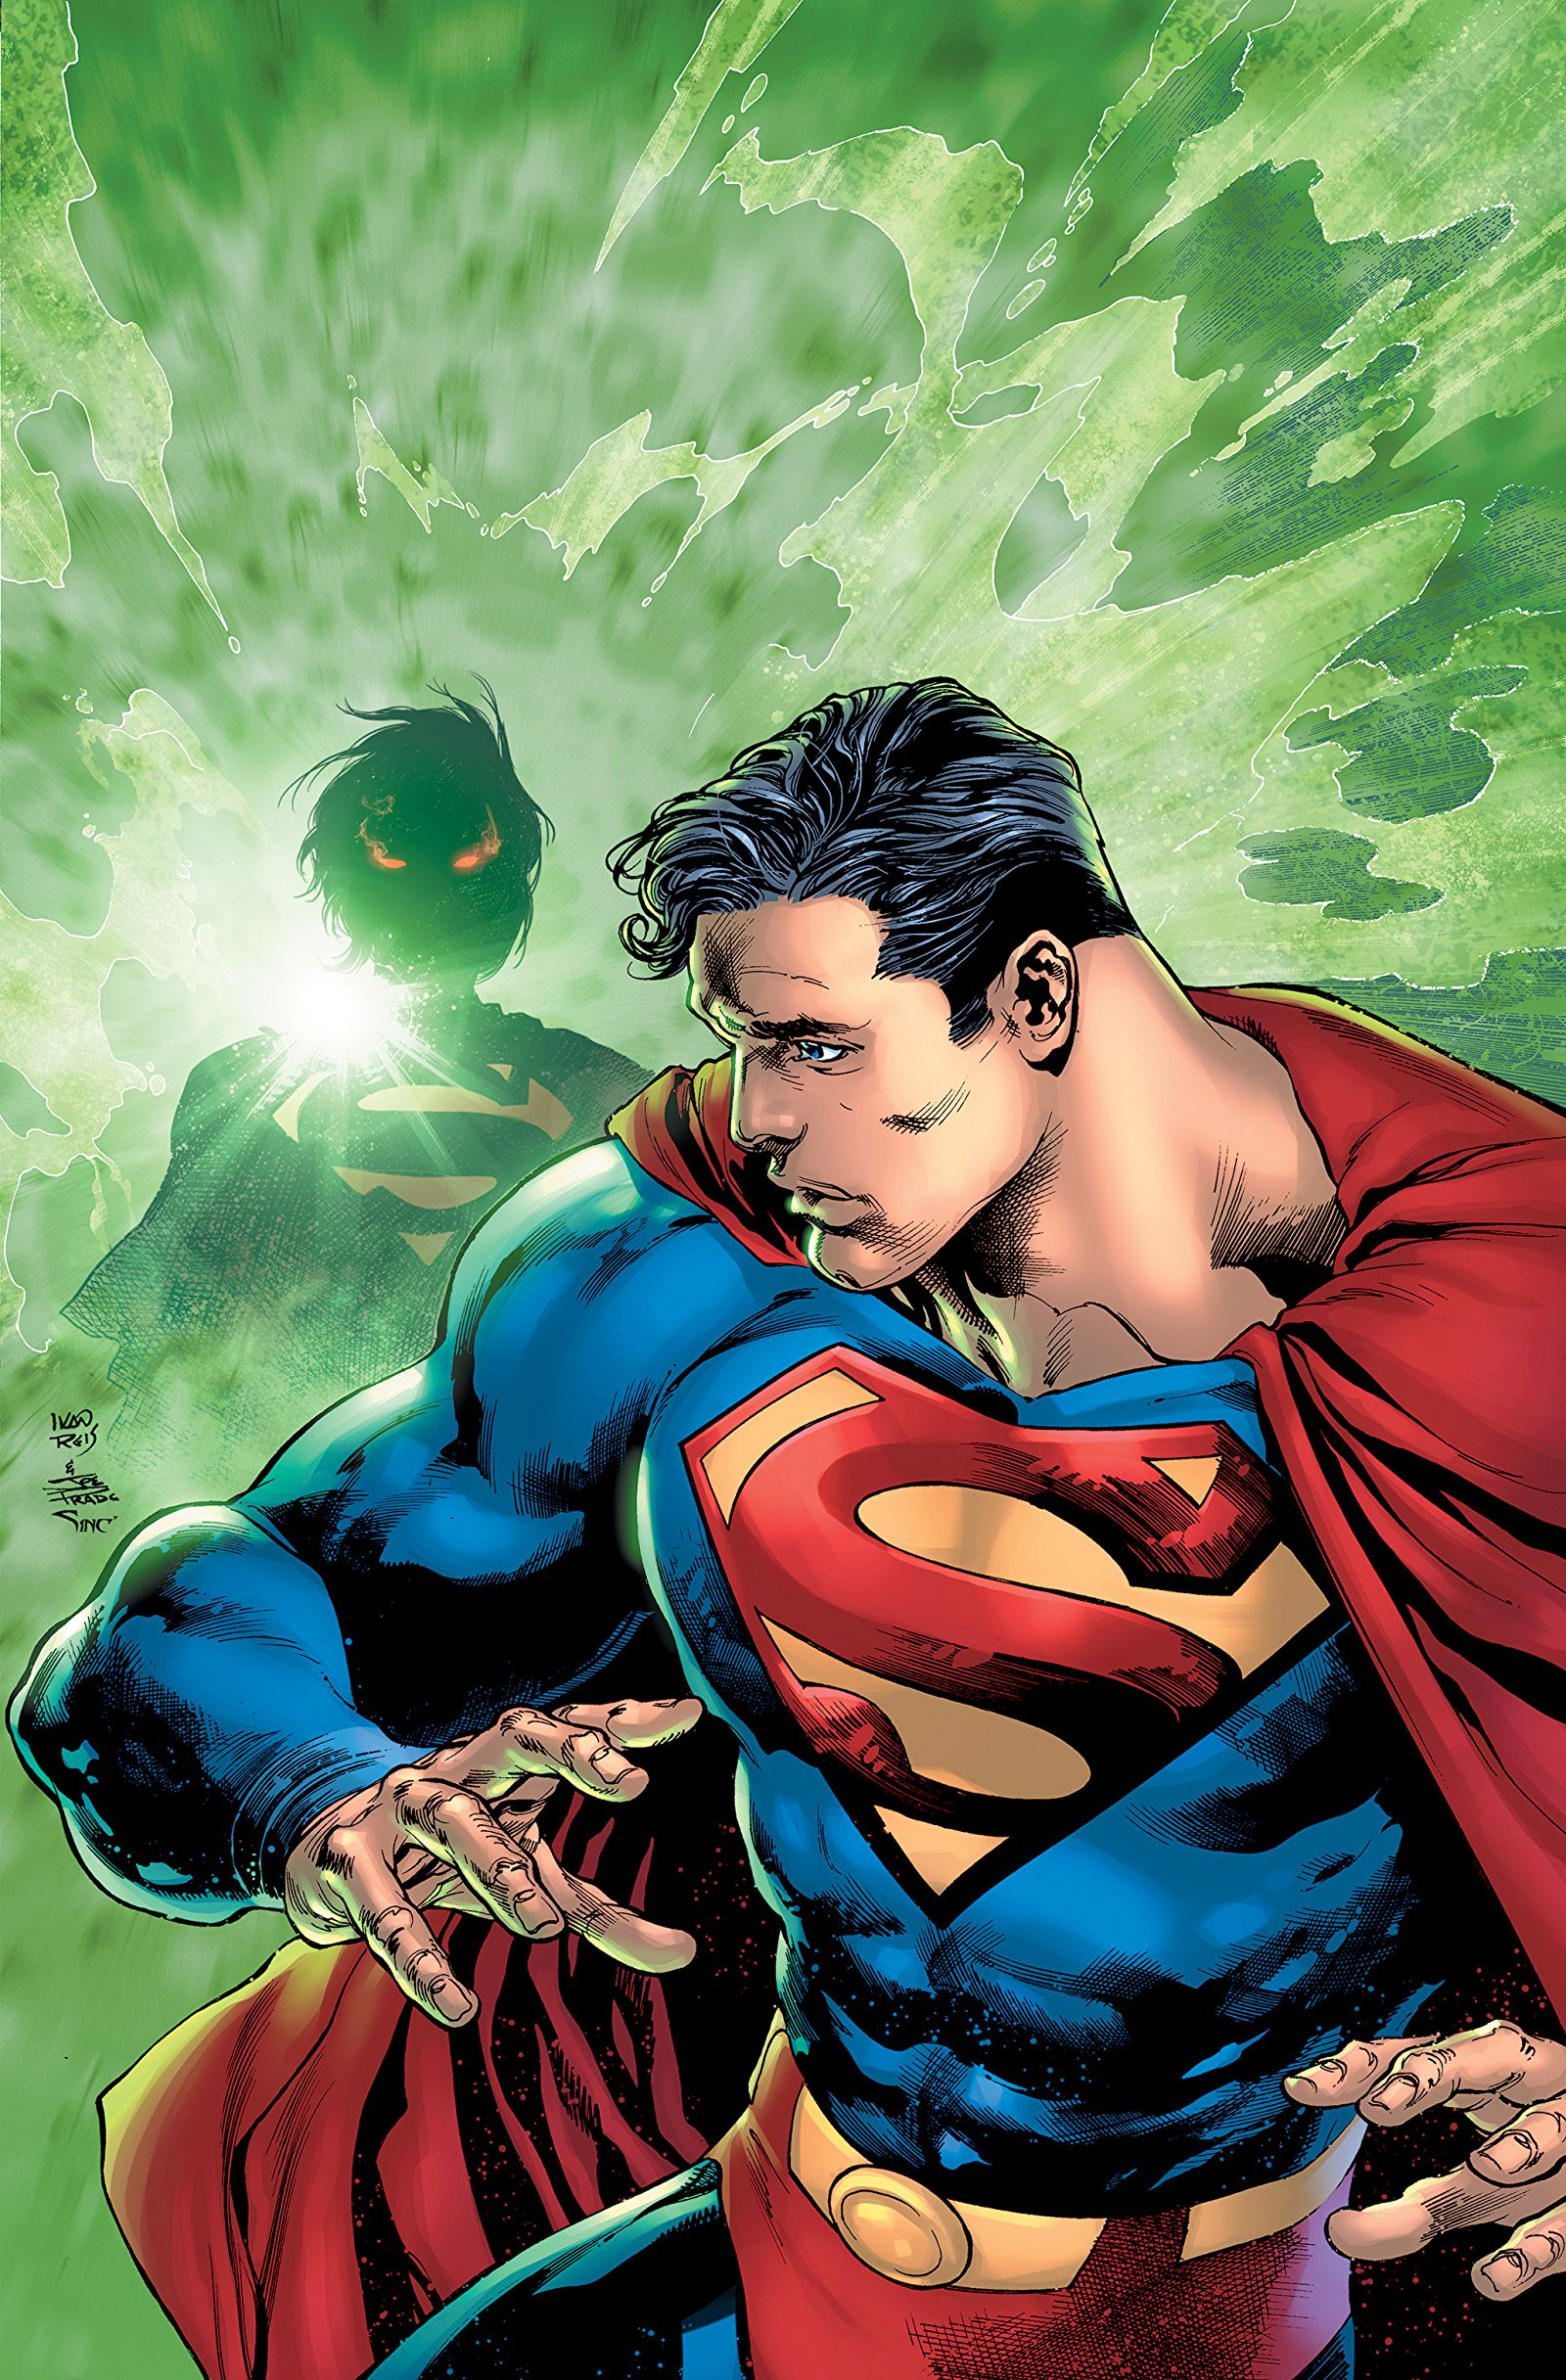 Superman #6 review: Battle for unity